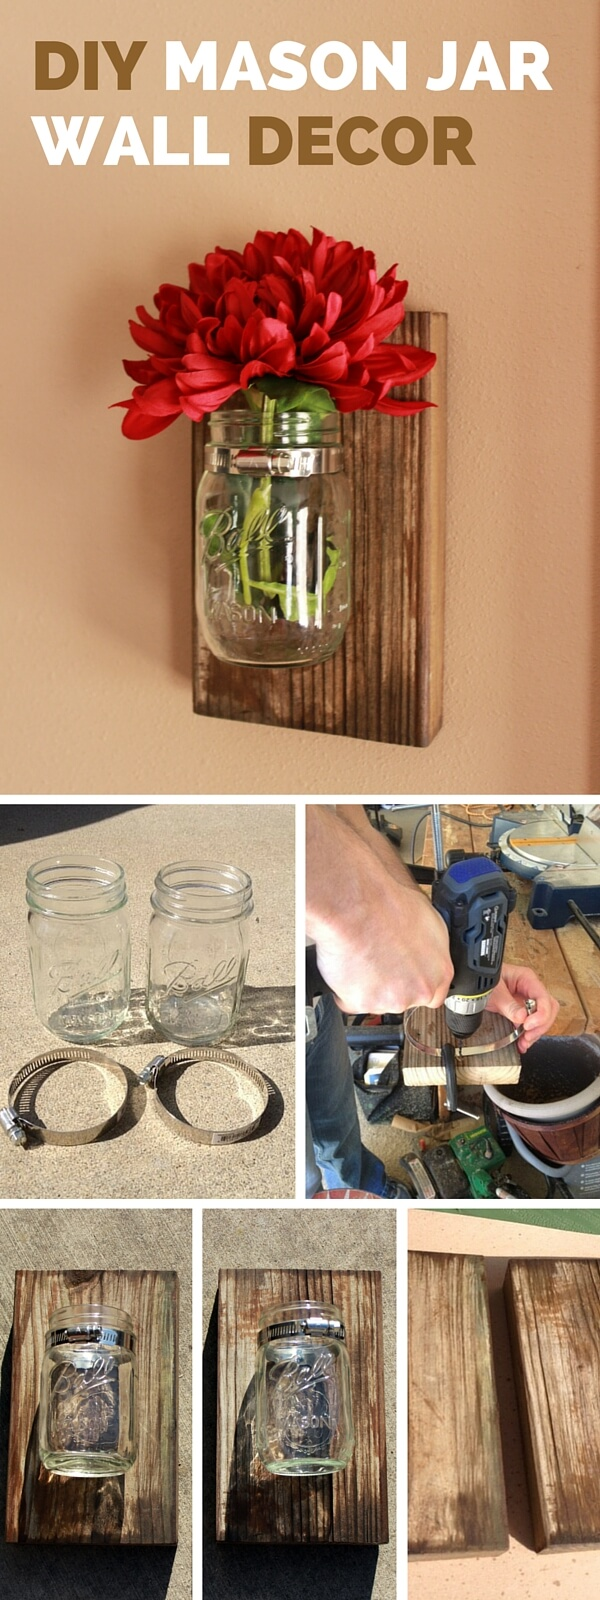 multi purpose repurposed mason jar decor - Diy Rustic Home Decor Ideas